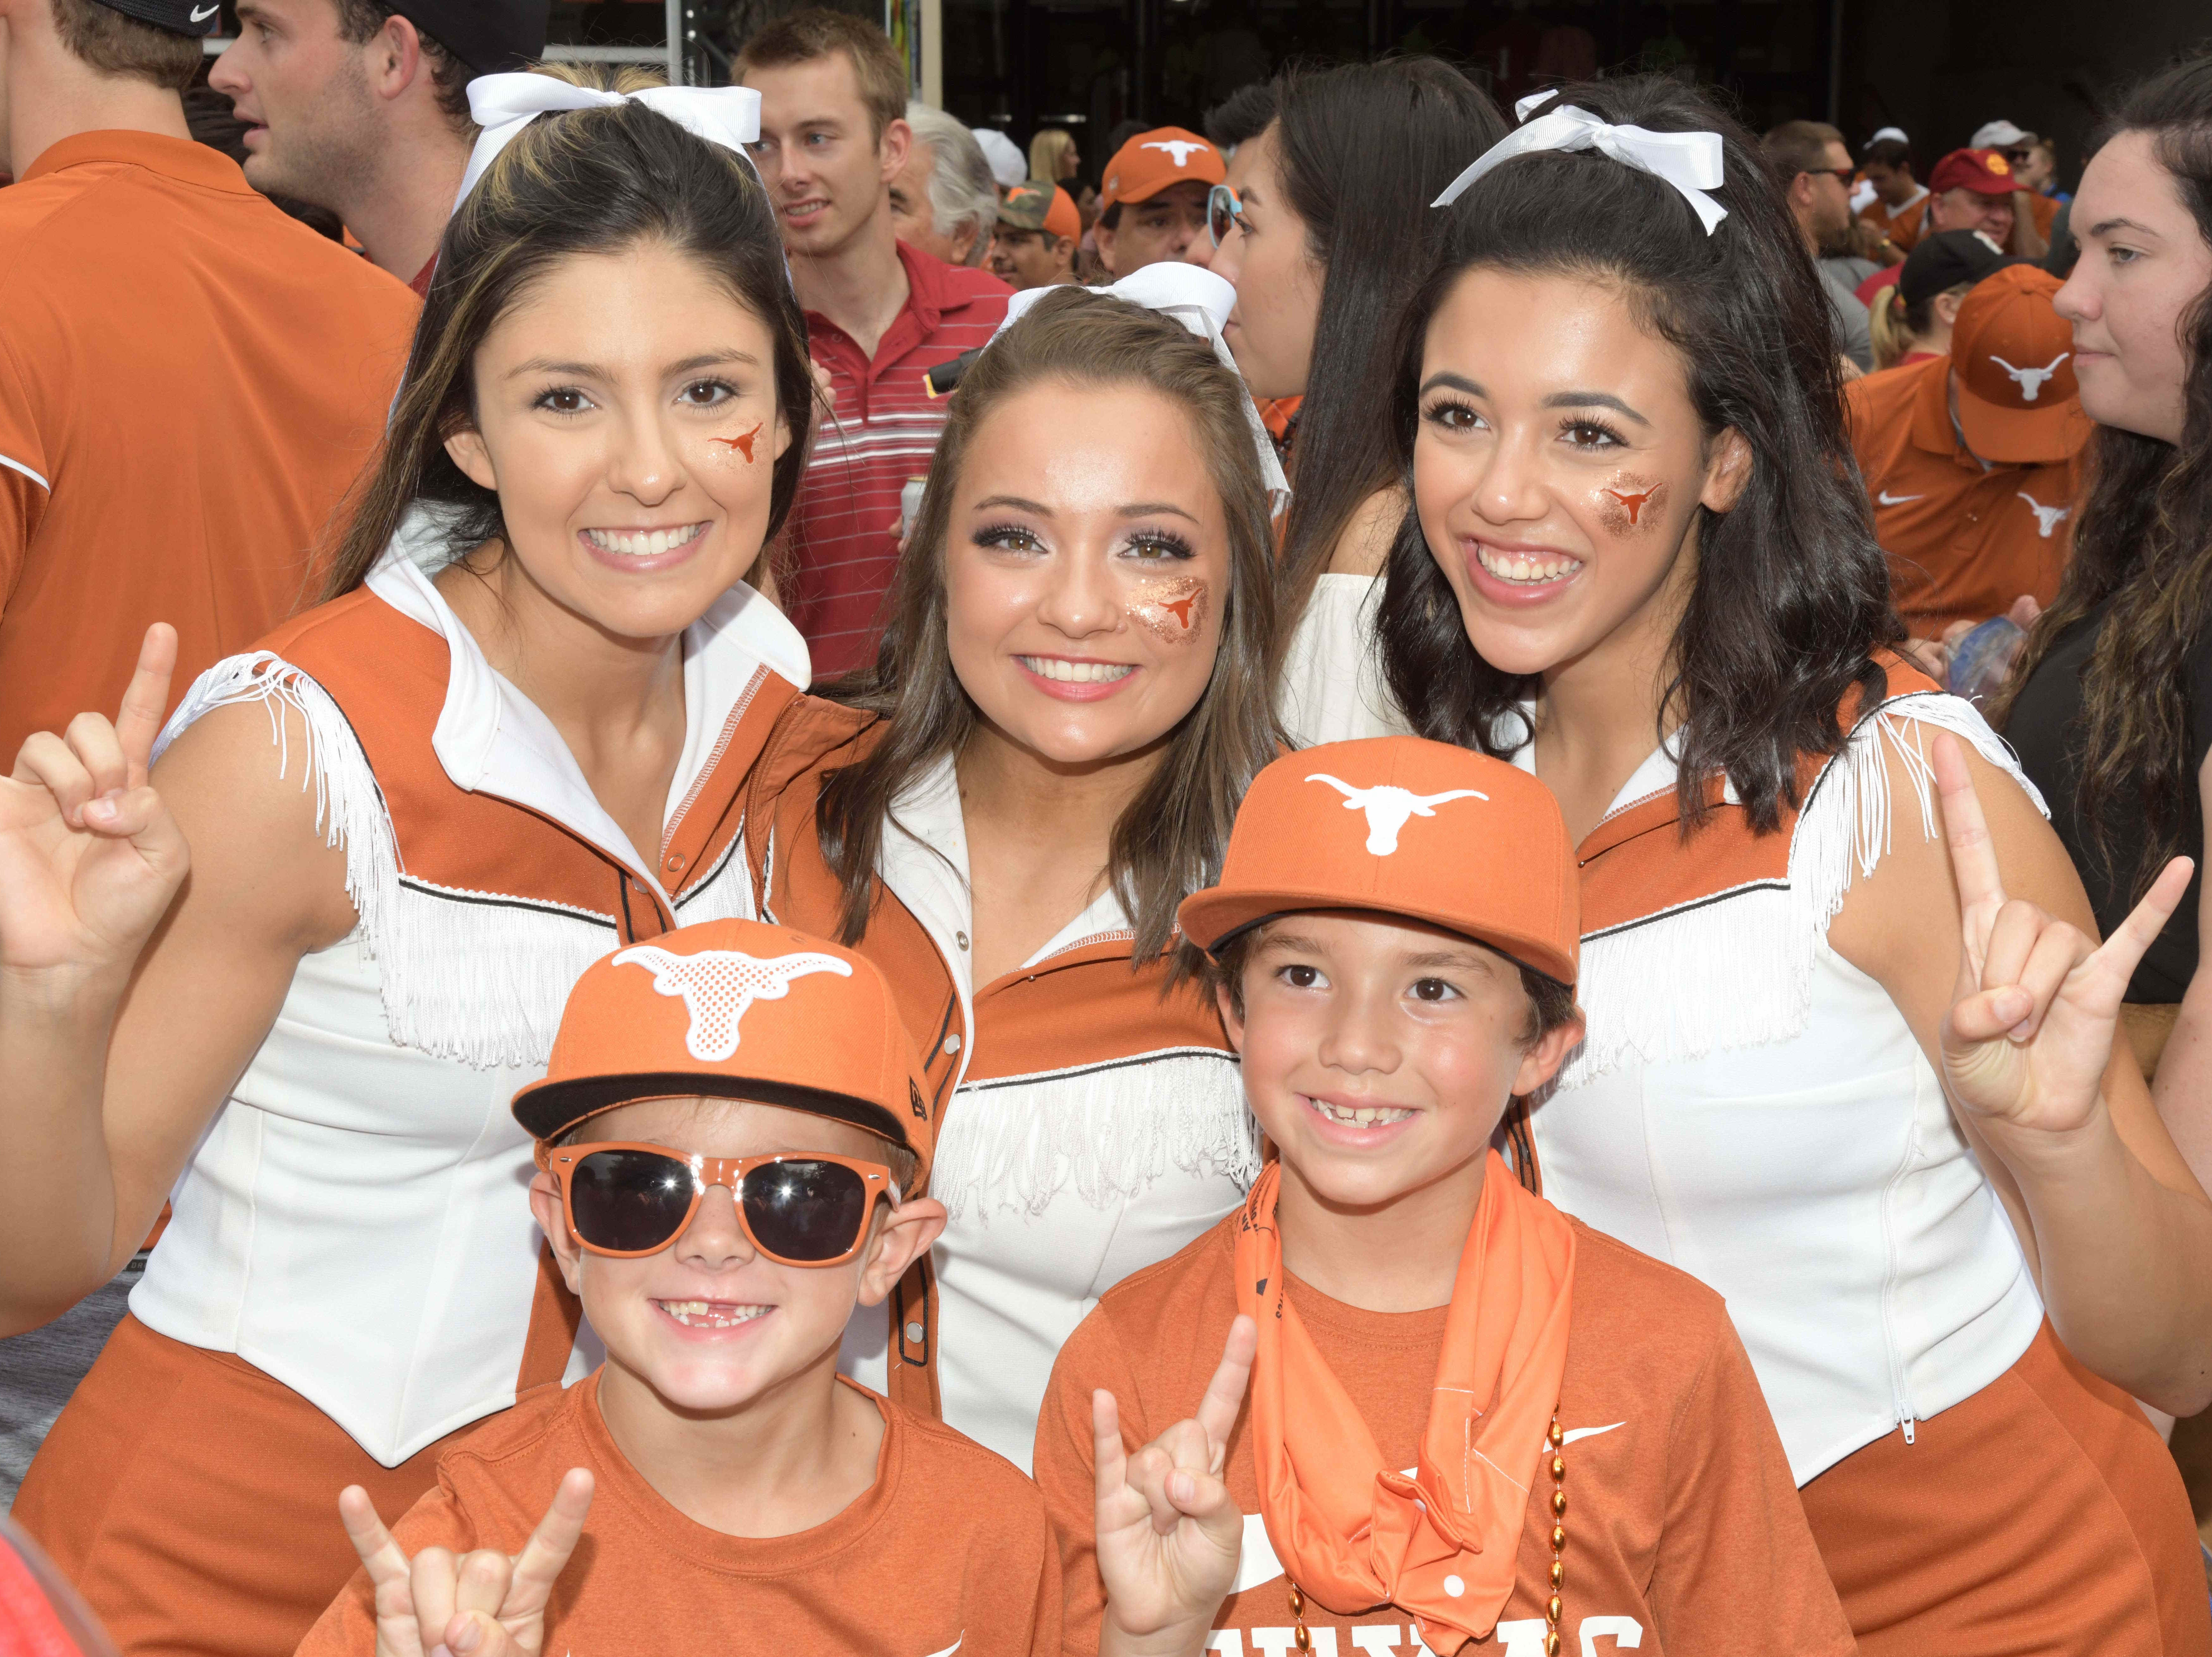 Week 3: Texas Longhorns cheerleaders pose with fans before the game against the Southern California Trojans at Darrell K Royal-Texas Memorial Stadium.